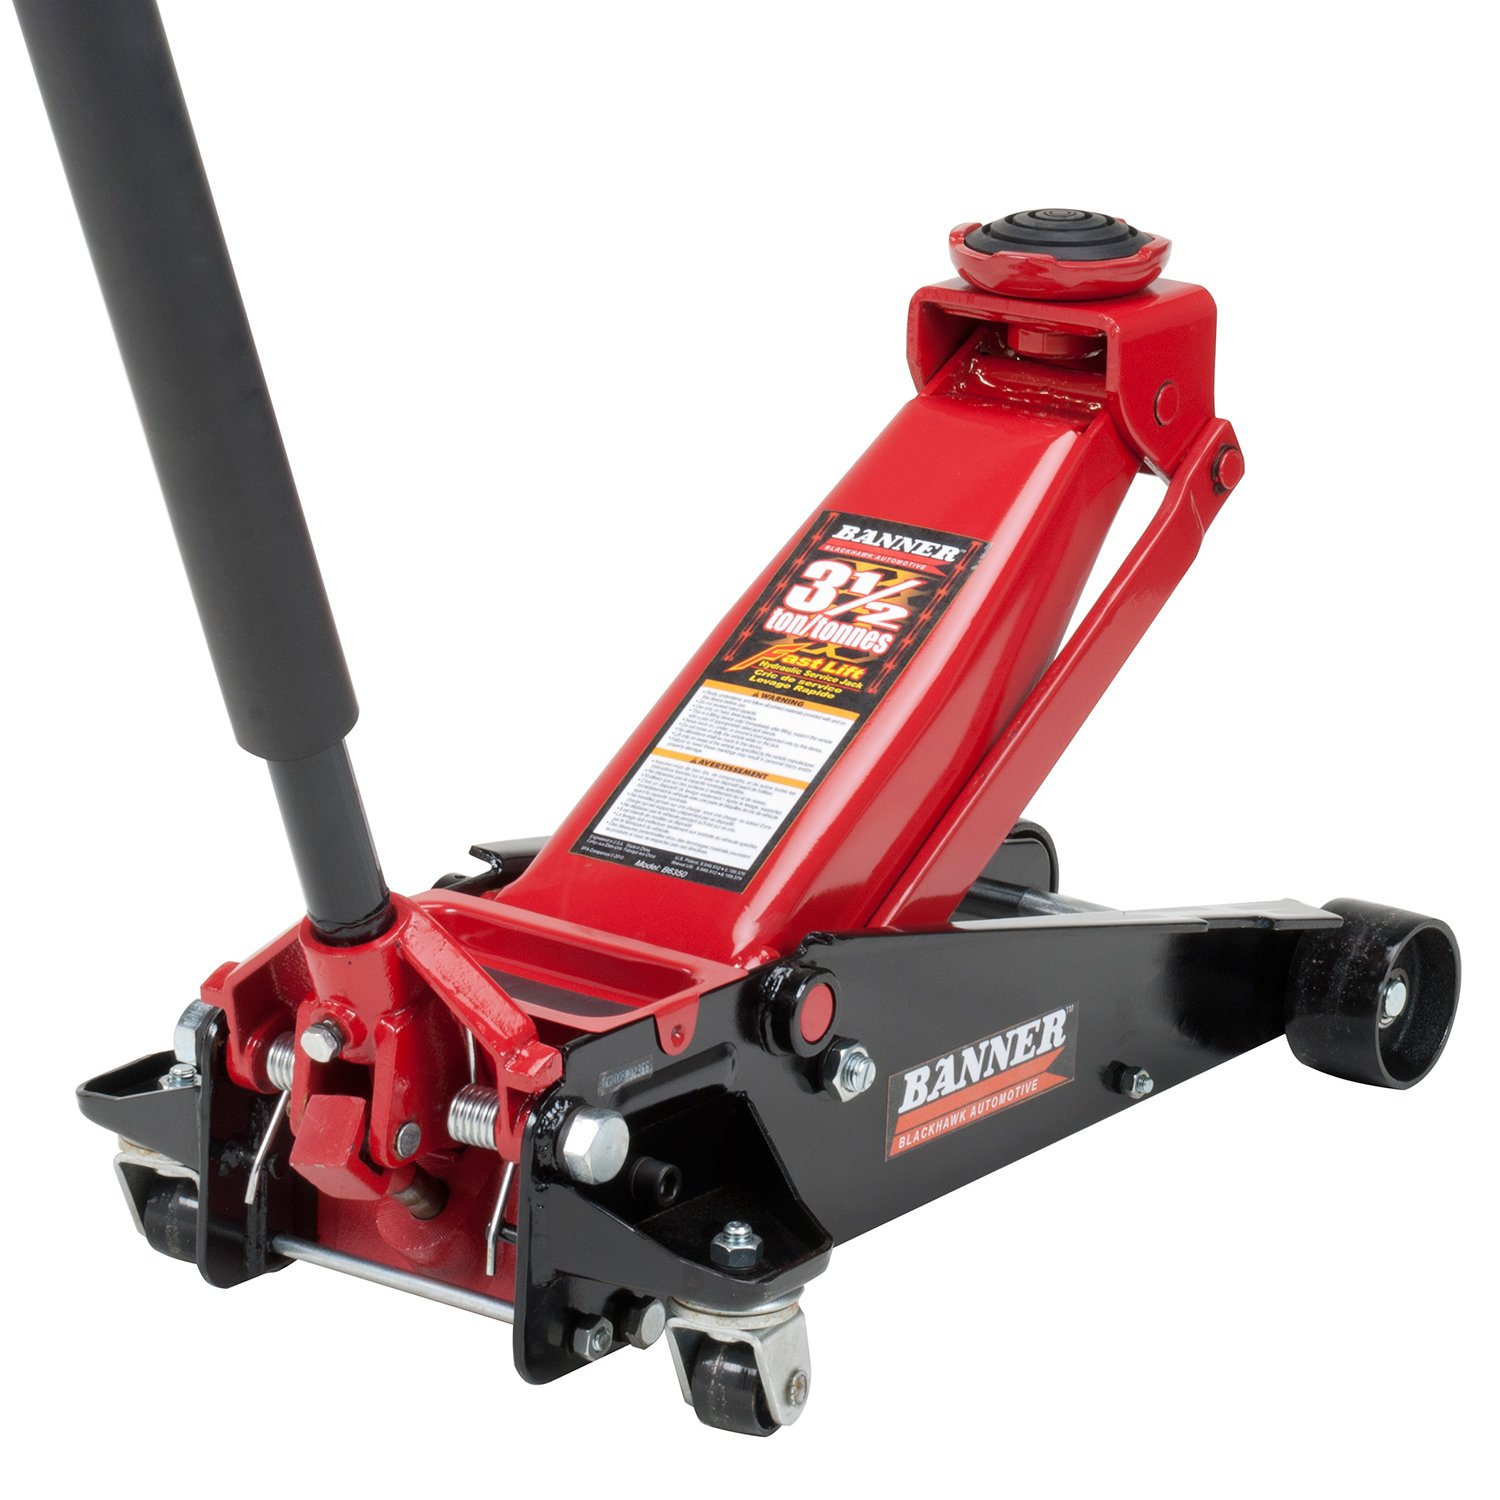 Top 10 Best Hydraulic Floor Jacks Reviews 2016 2017 On